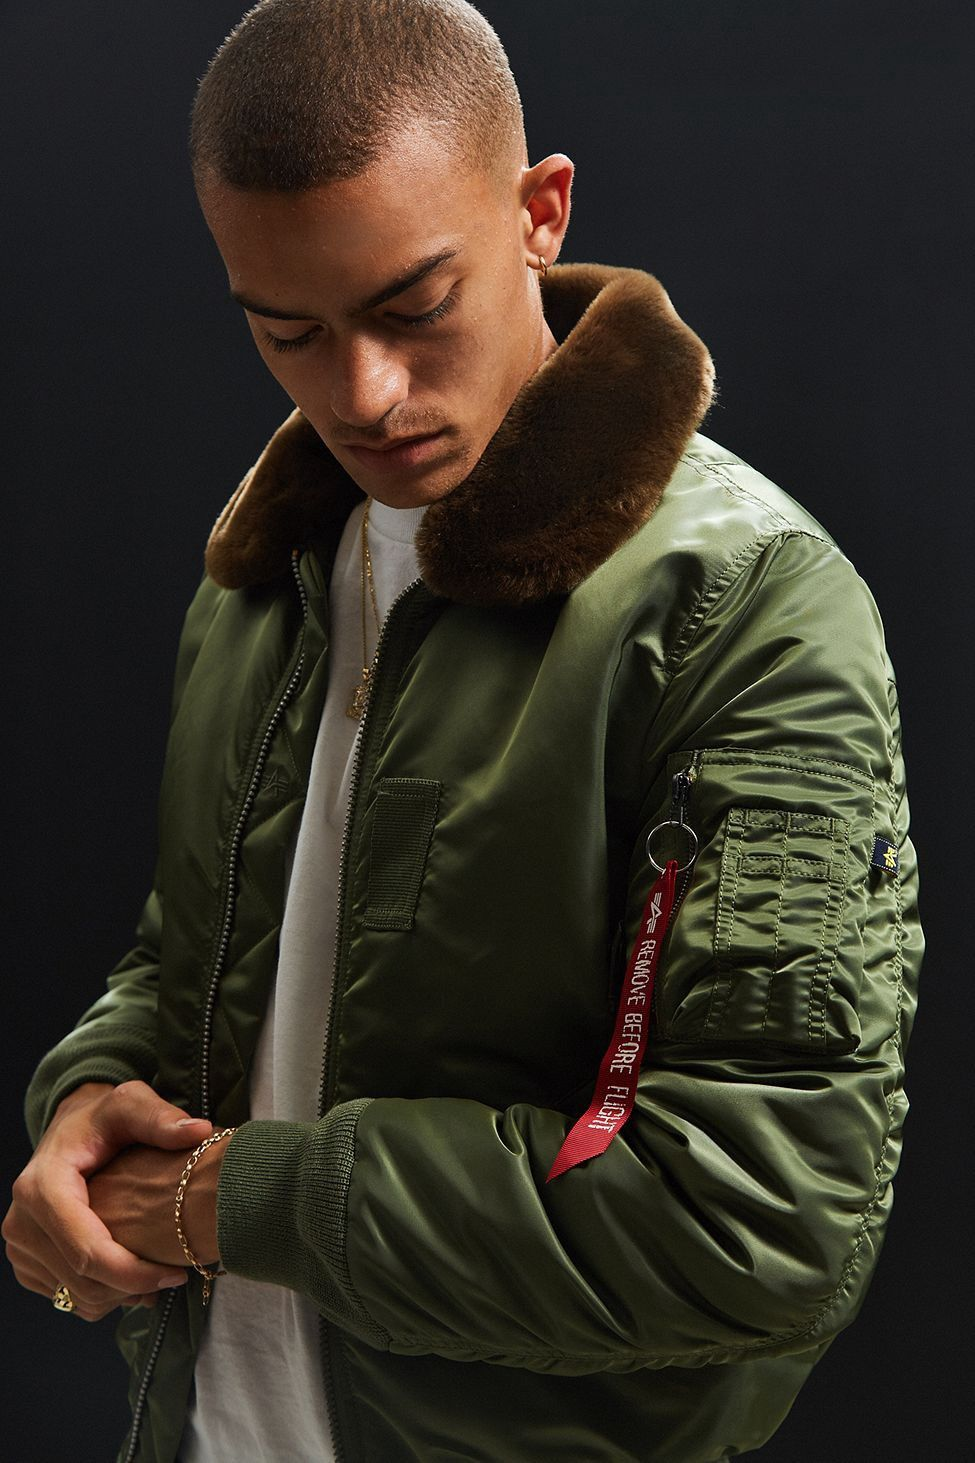 7b24f26a64f Urban Outfitters Alpha Industries B-15 Slim-Fit Bomber Jacket - Green S